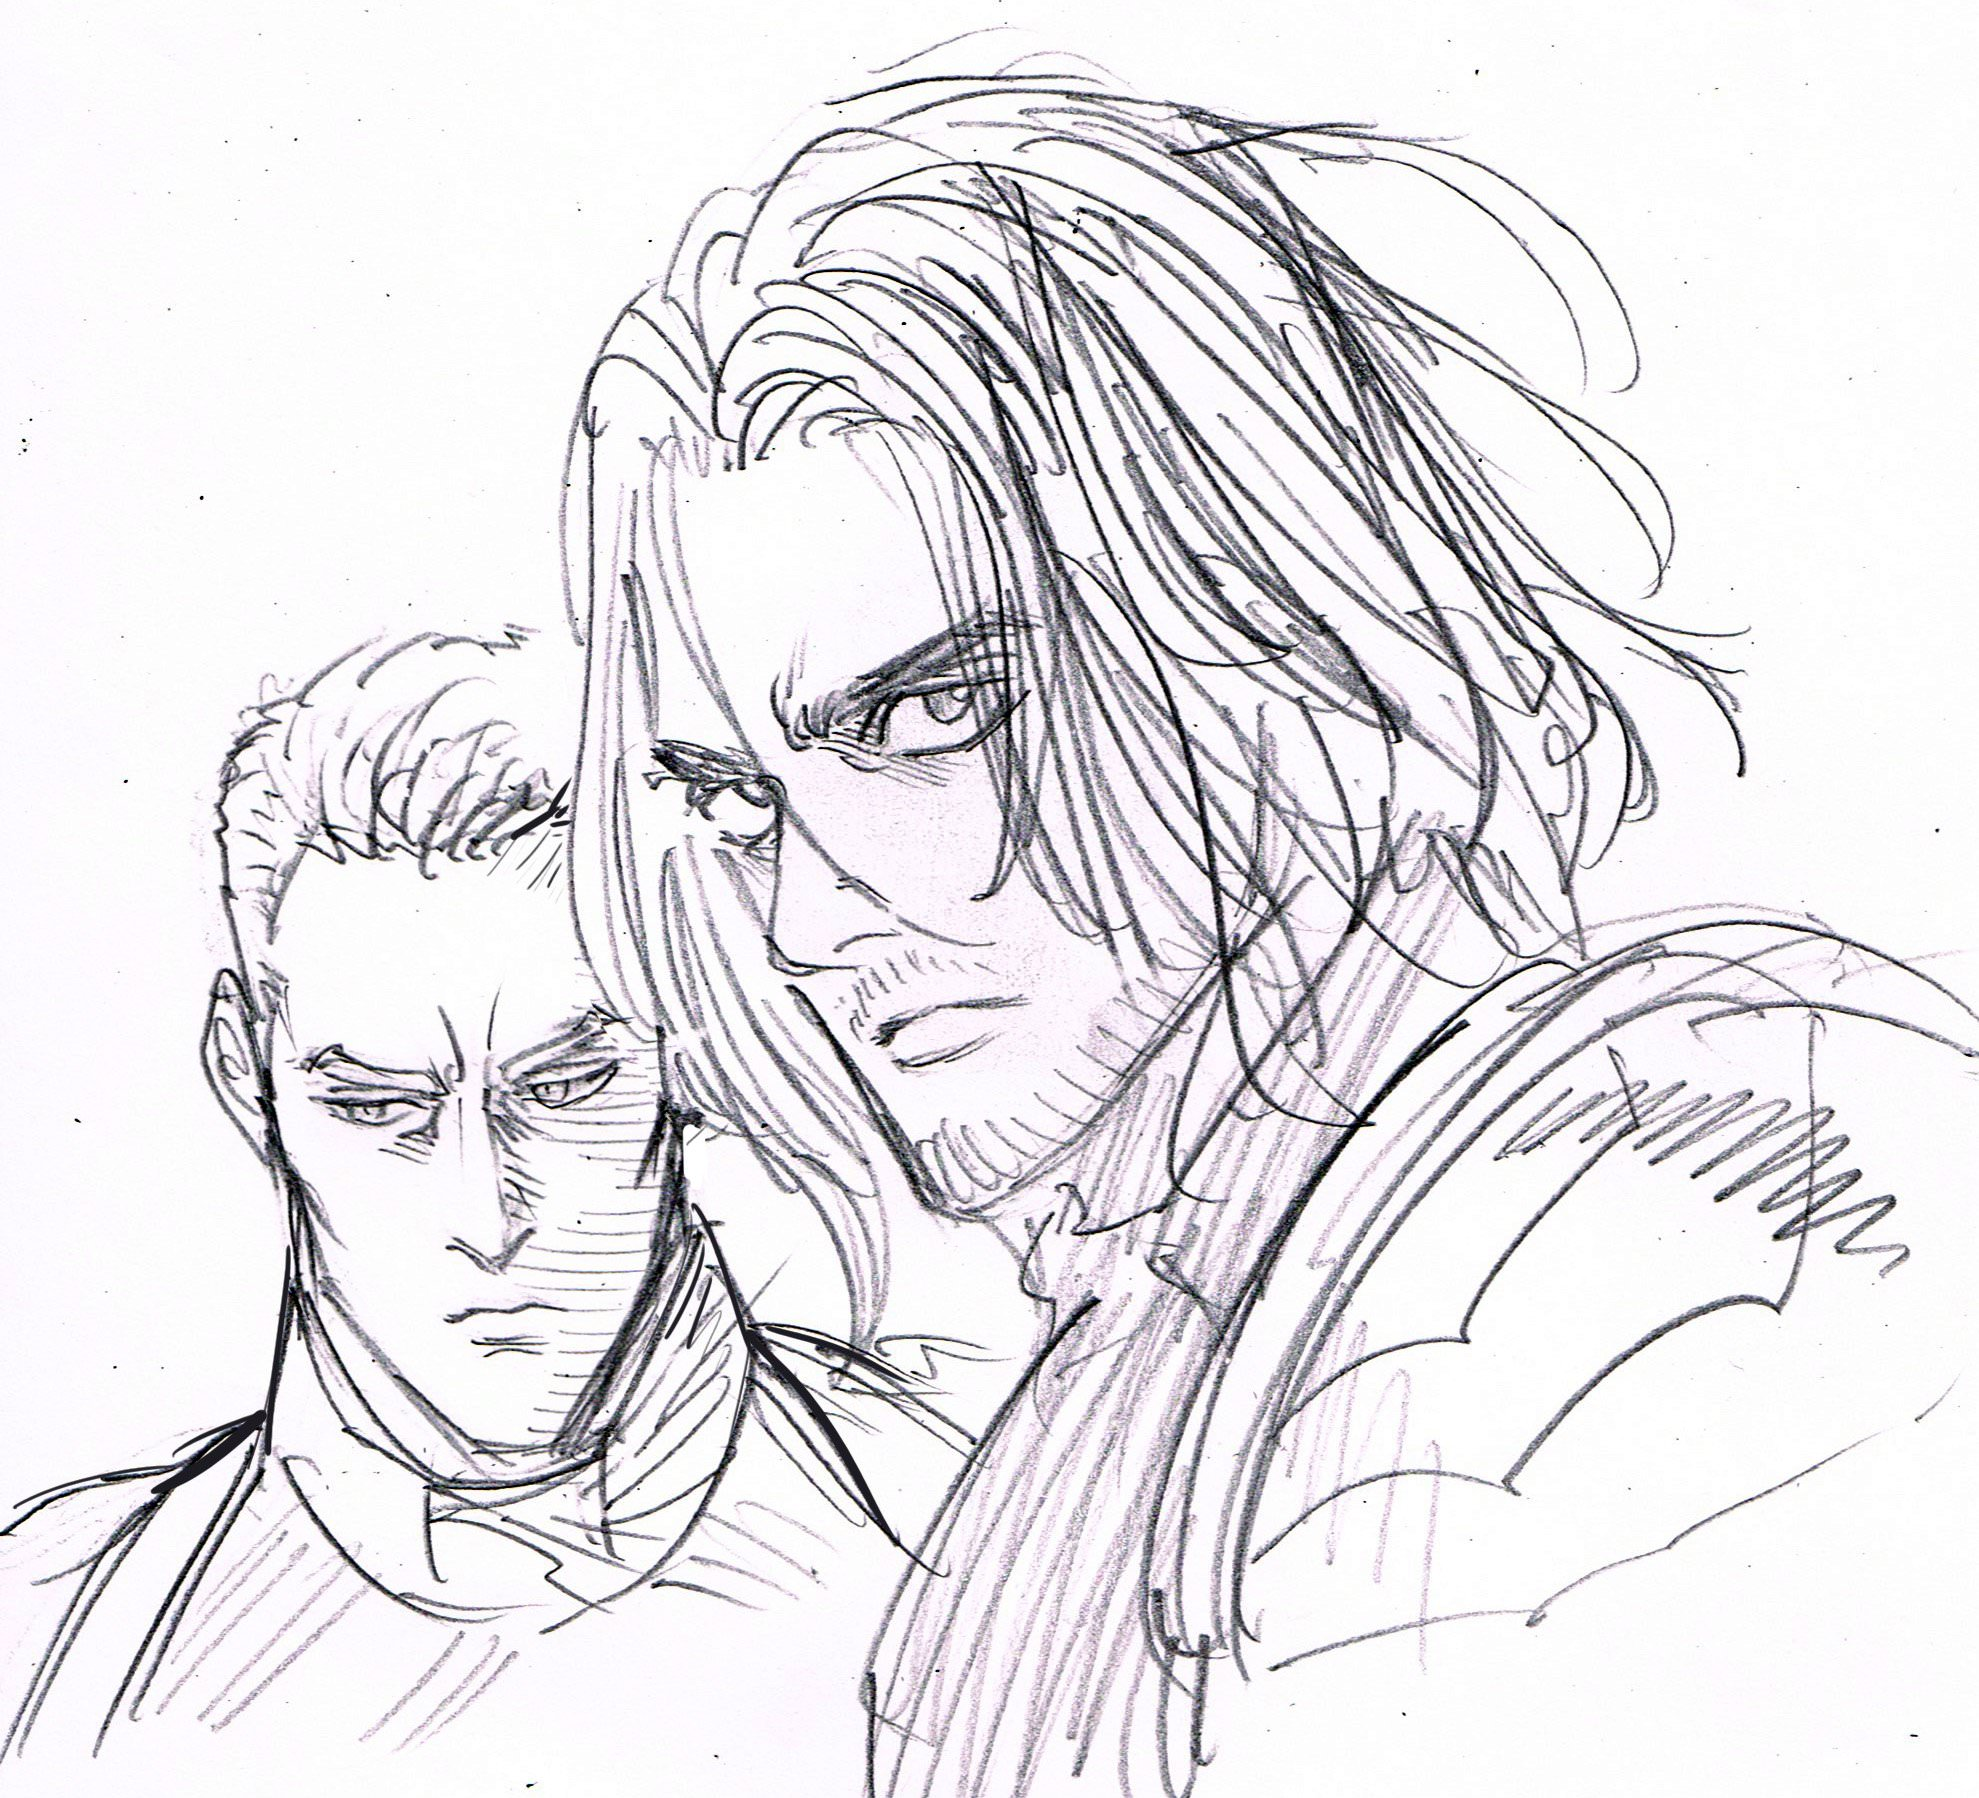 1979x1798 Captain America And Winter Soldier Sketch By One Punch Man'S